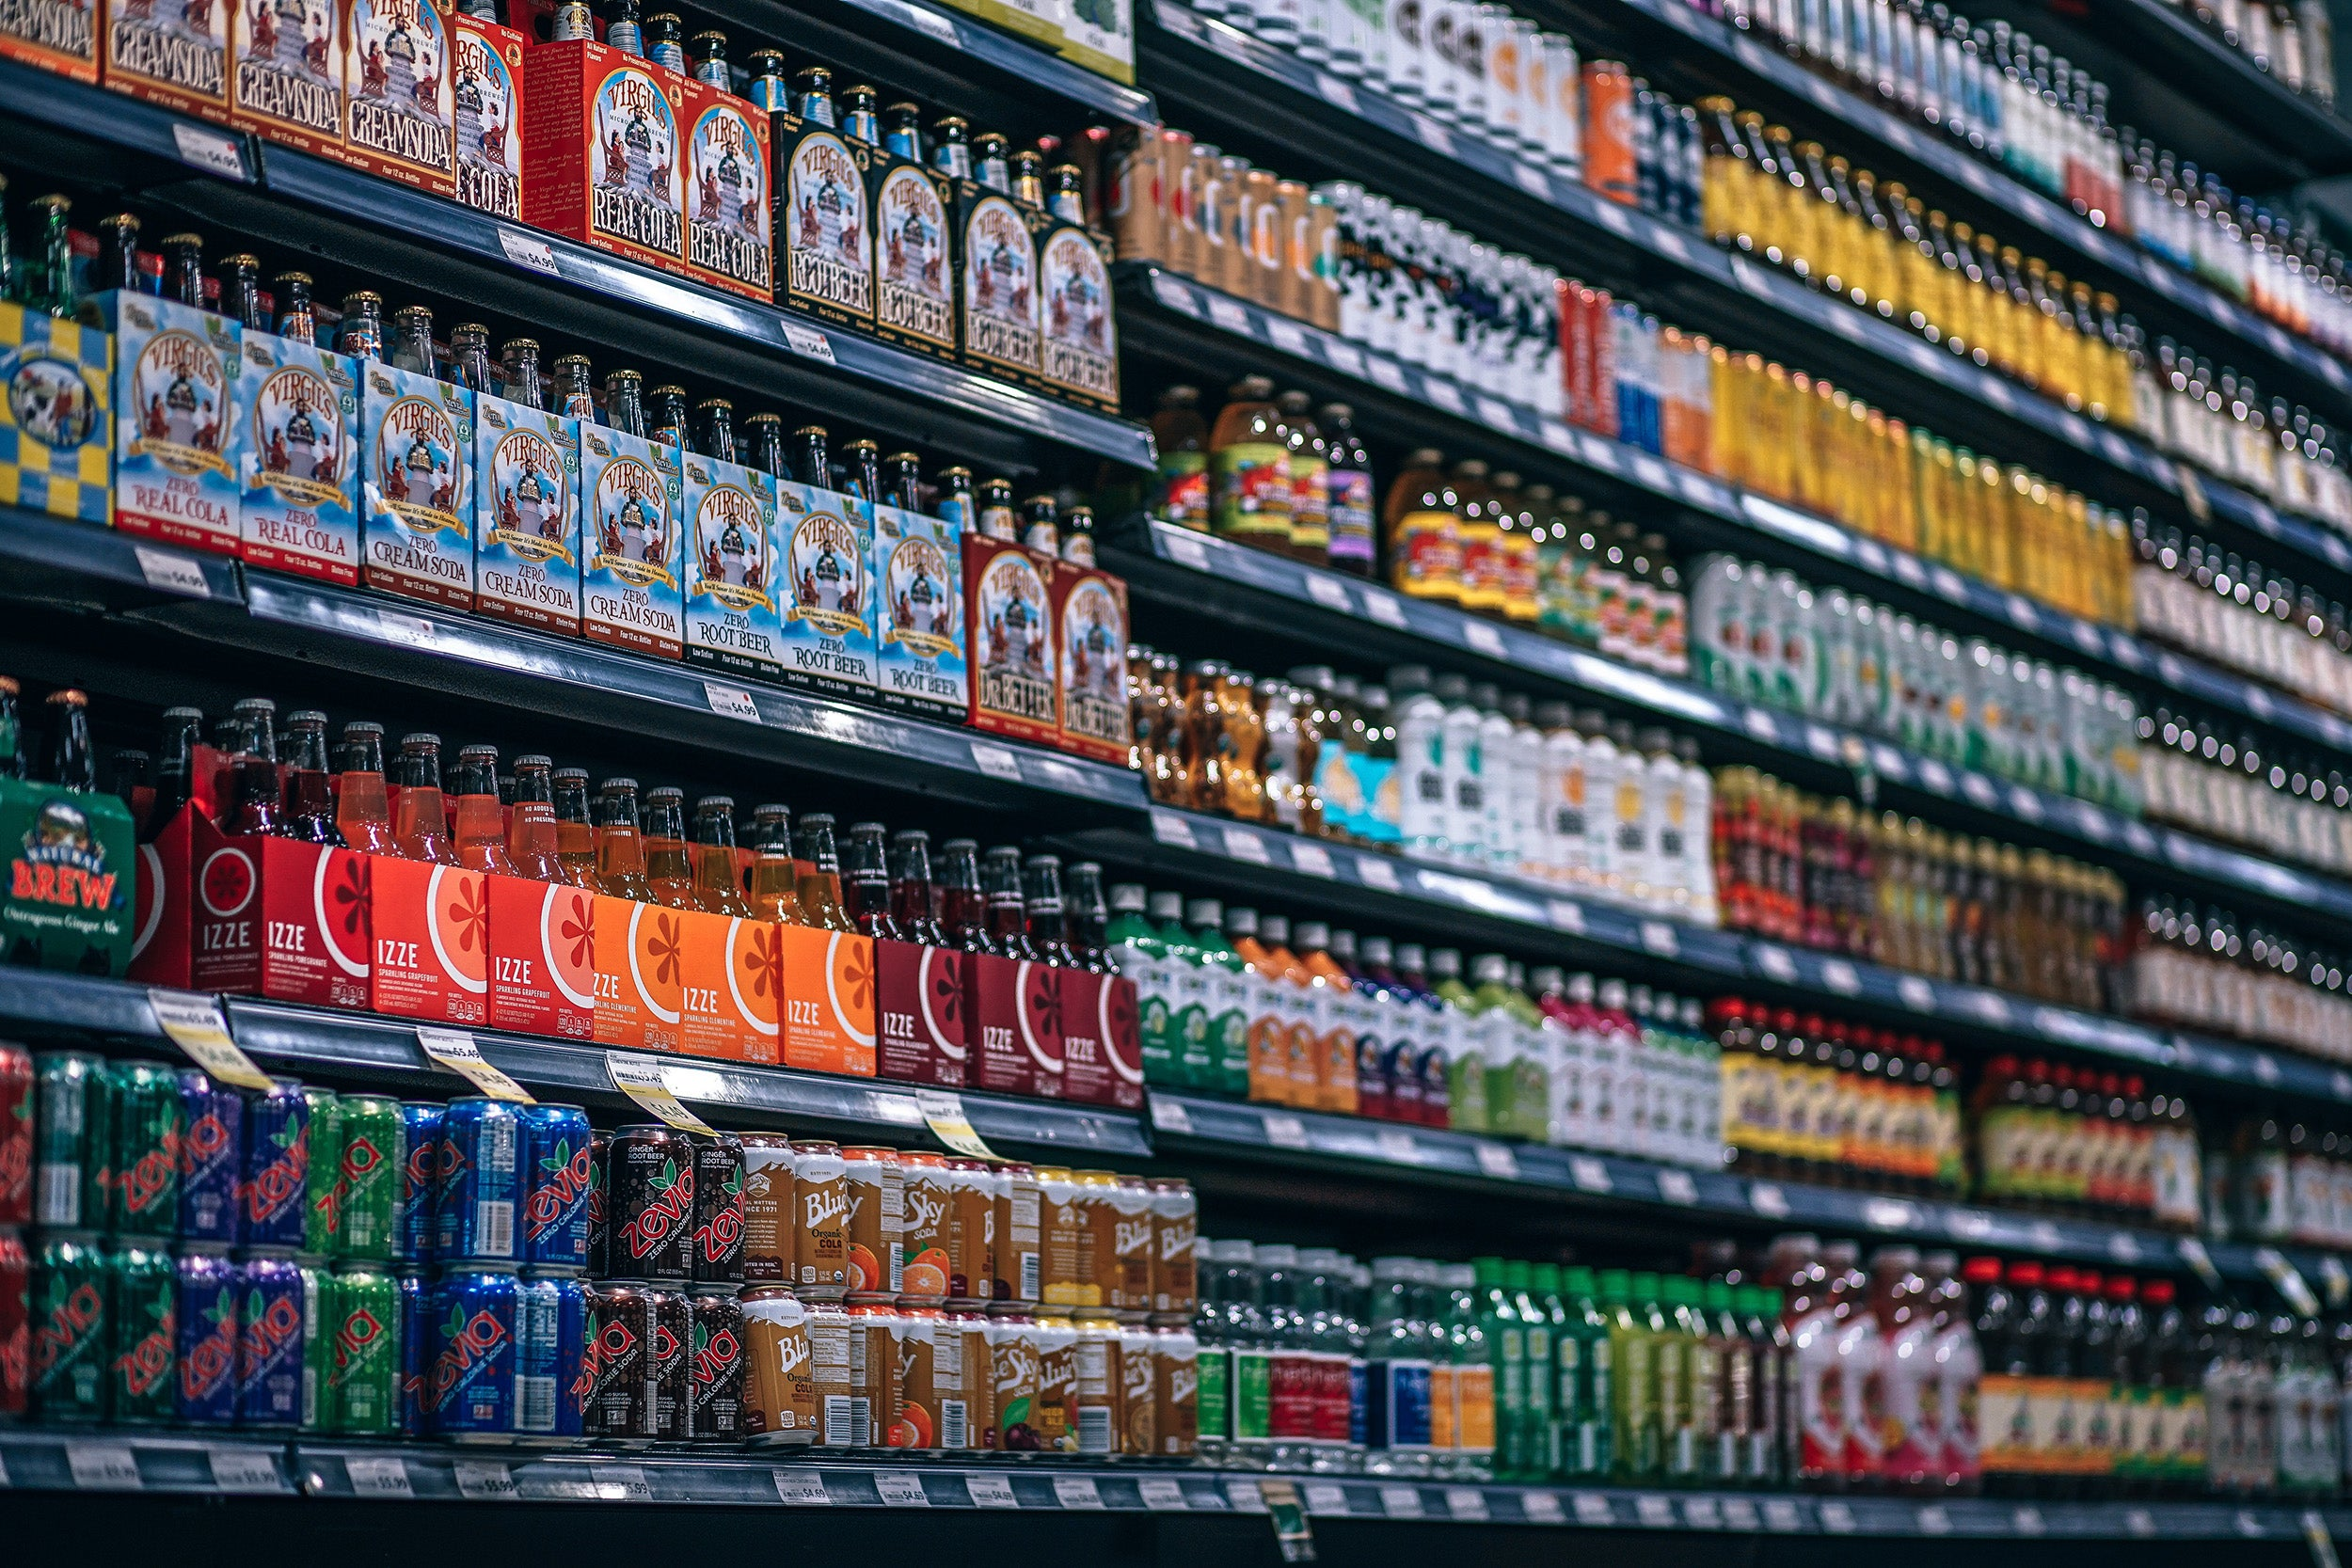 Three Harvard studies have found warning labels with graphic images are more effective than text warnings or calorie listings in reducing sugary drink purchases.